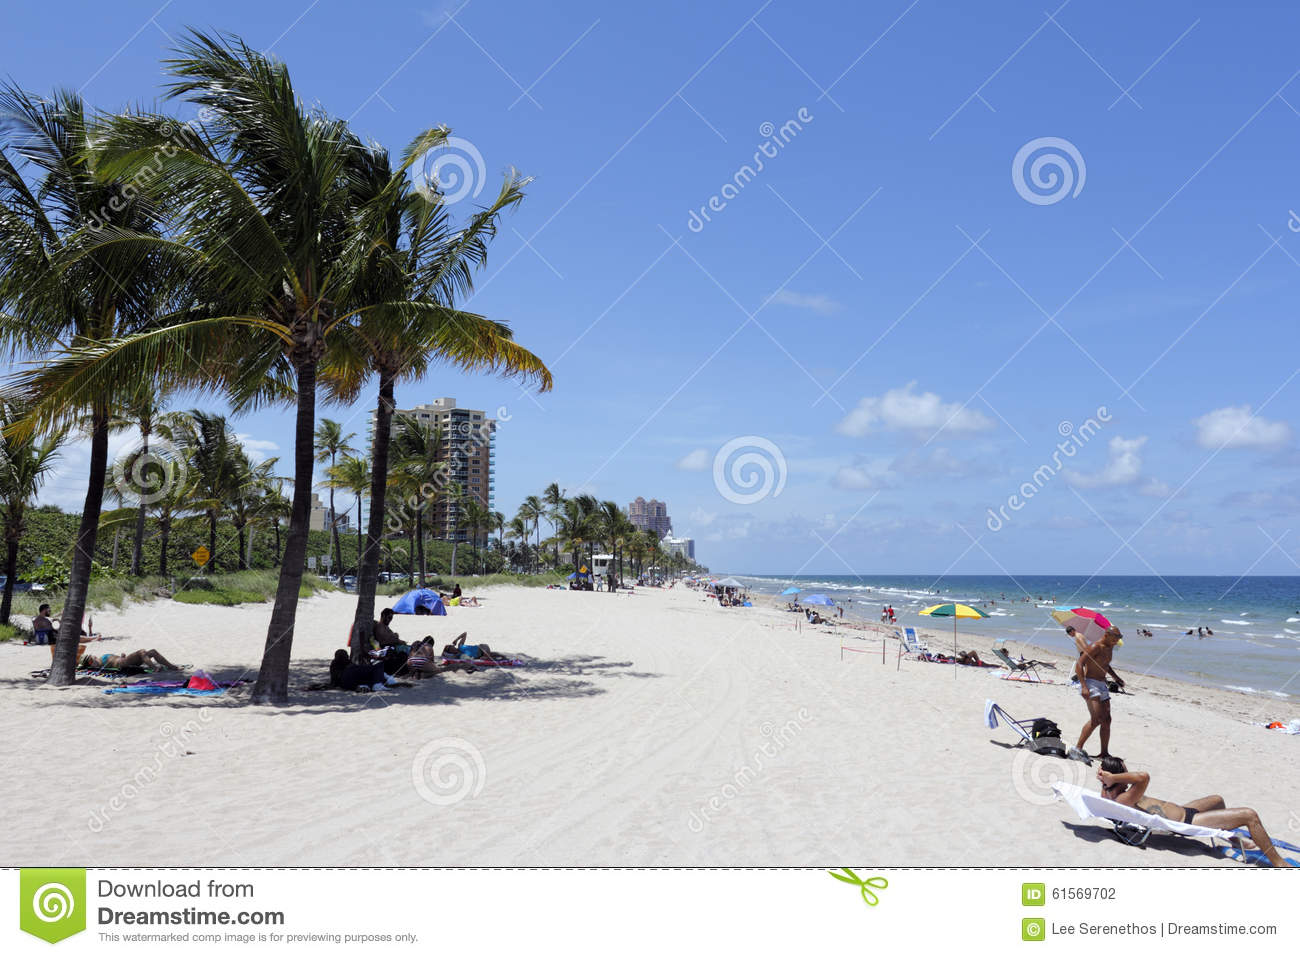 lauderdale women Find 338 listings related to women in fort lauderdale on ypcom see reviews, photos, directions, phone numbers and more for women locations in fort lauderdale, fl.